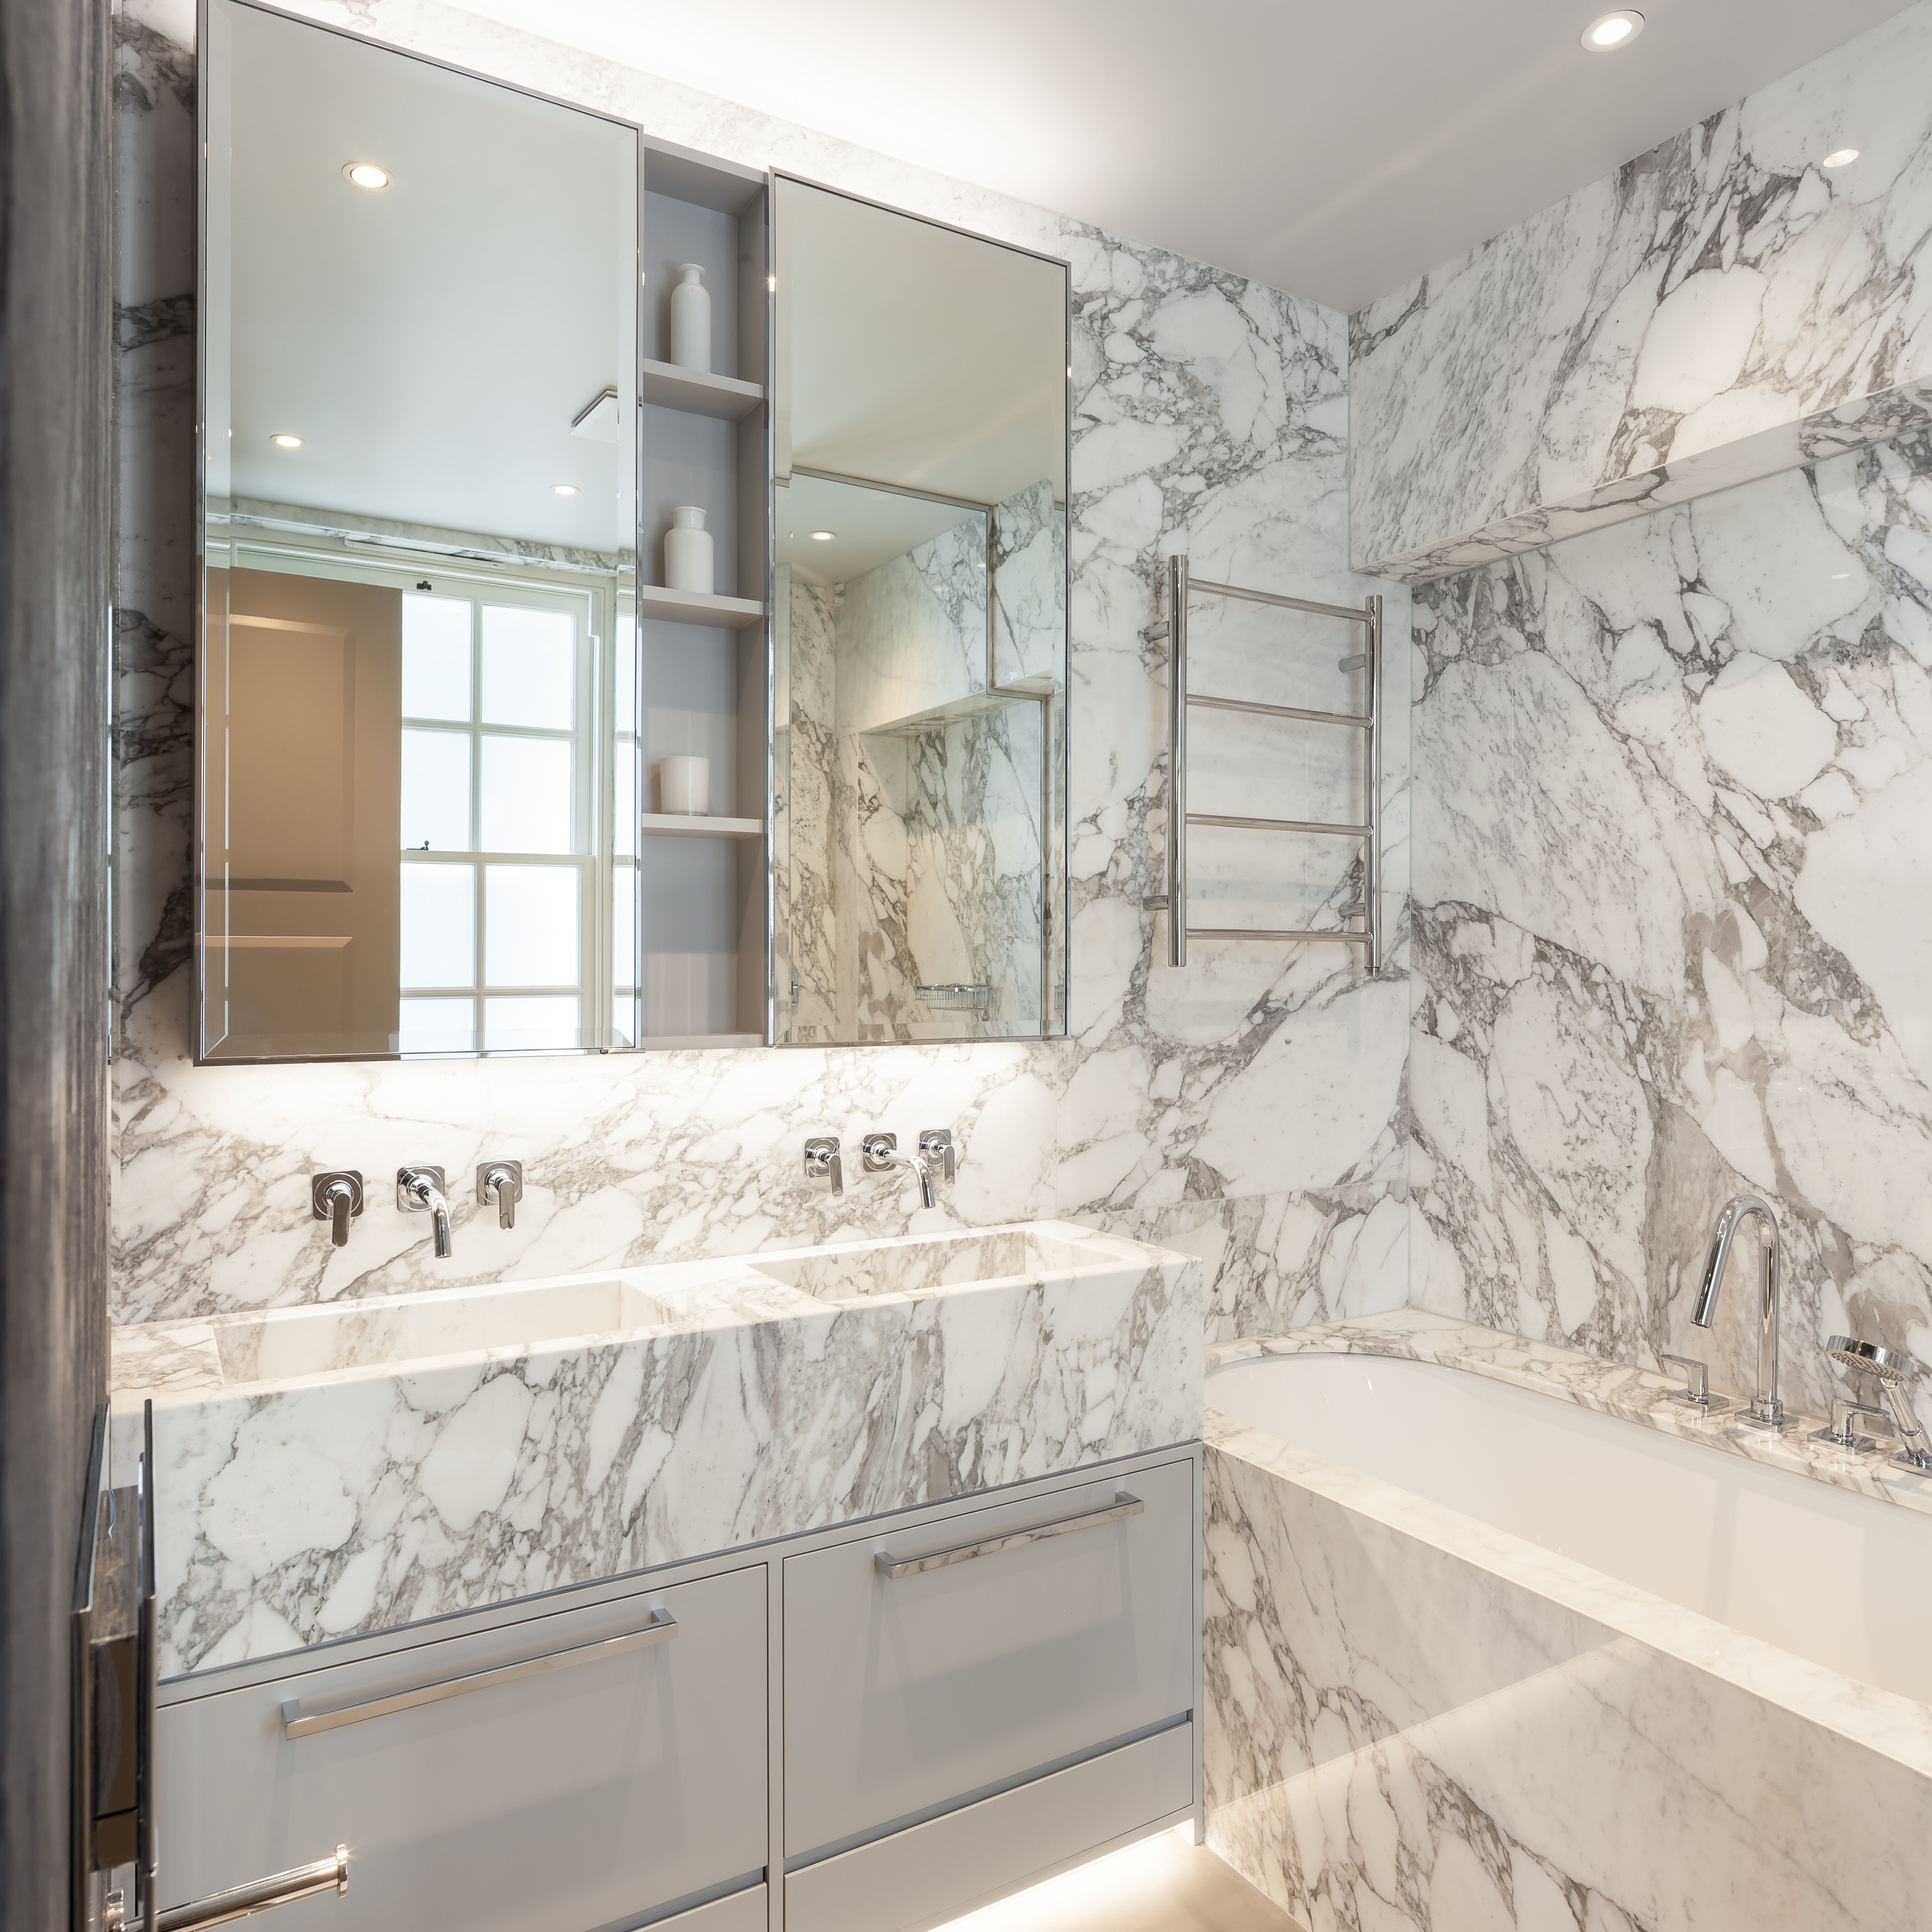 On this project the main family bathroom was fitted with white carrera marble and bespoke storage below the twin marble sinks